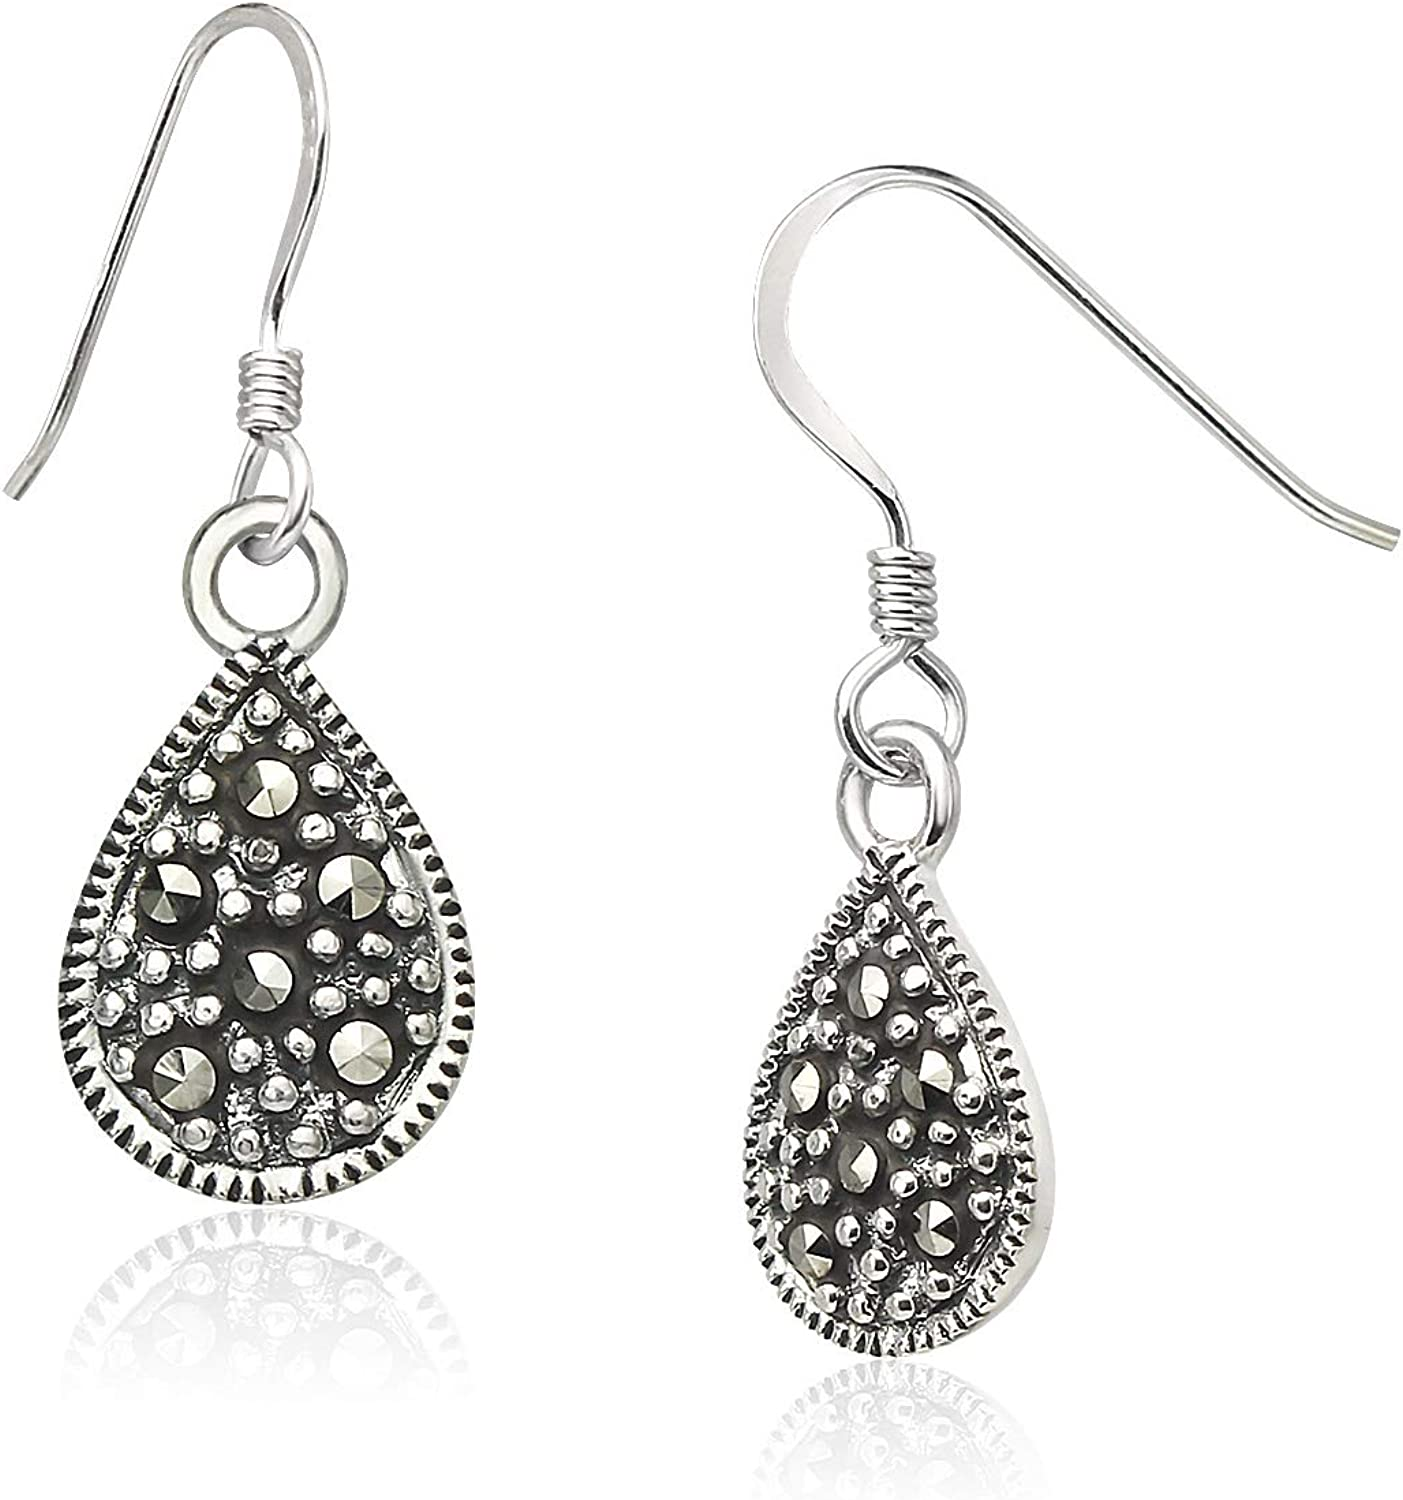 Big Apple Hoops - Marcasite Teardrop Dangle Earrings Made from Genuine Solid 925 Sterling Silver Lightweight and Unique Design